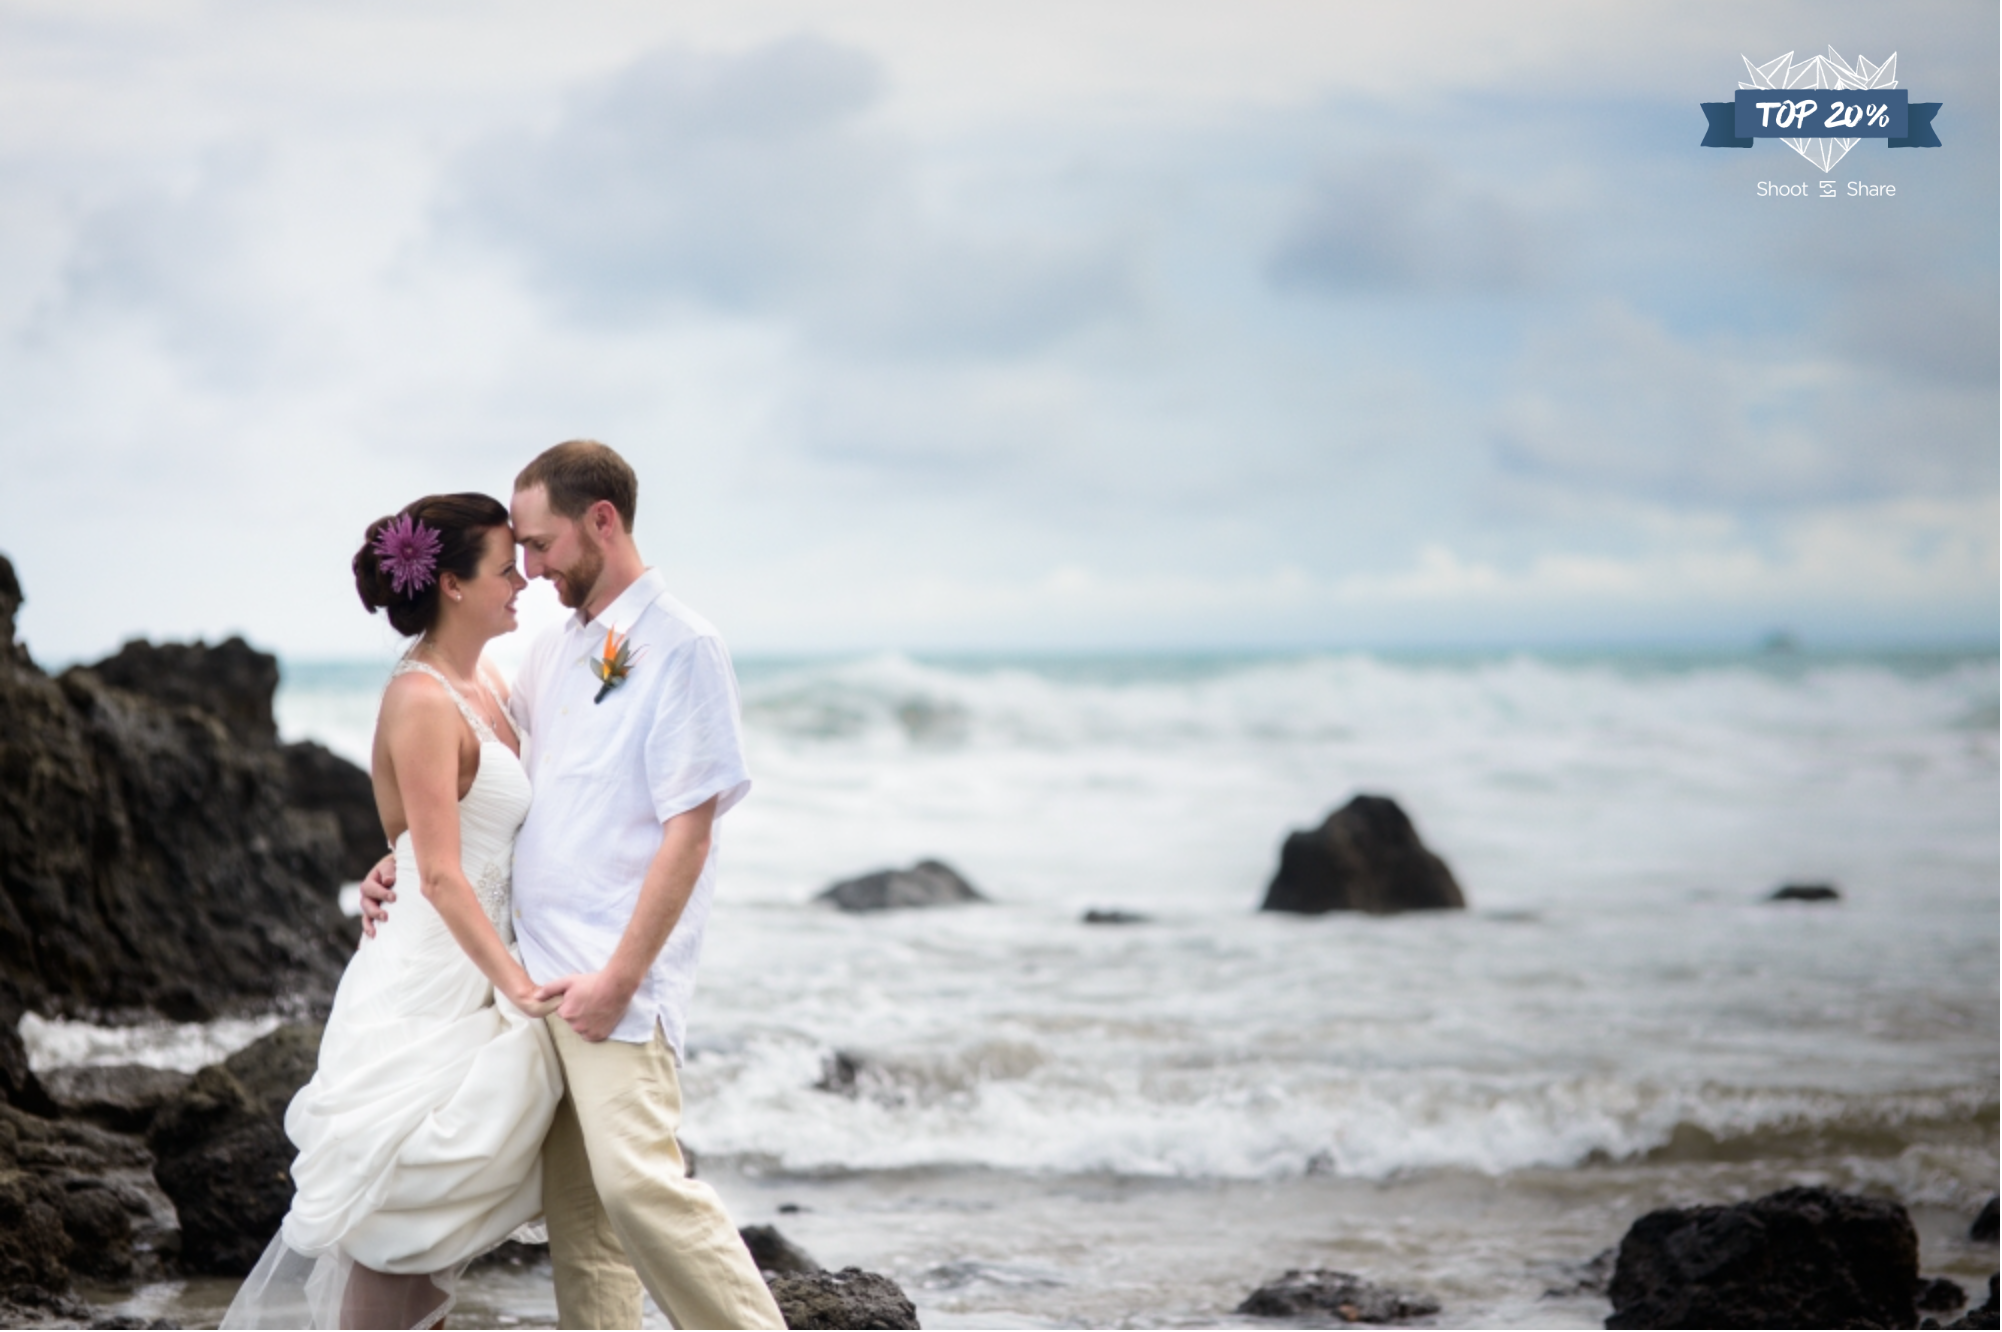 Romantic Destination Wedding on the Beach; Manuel Antonio, Costa Rica